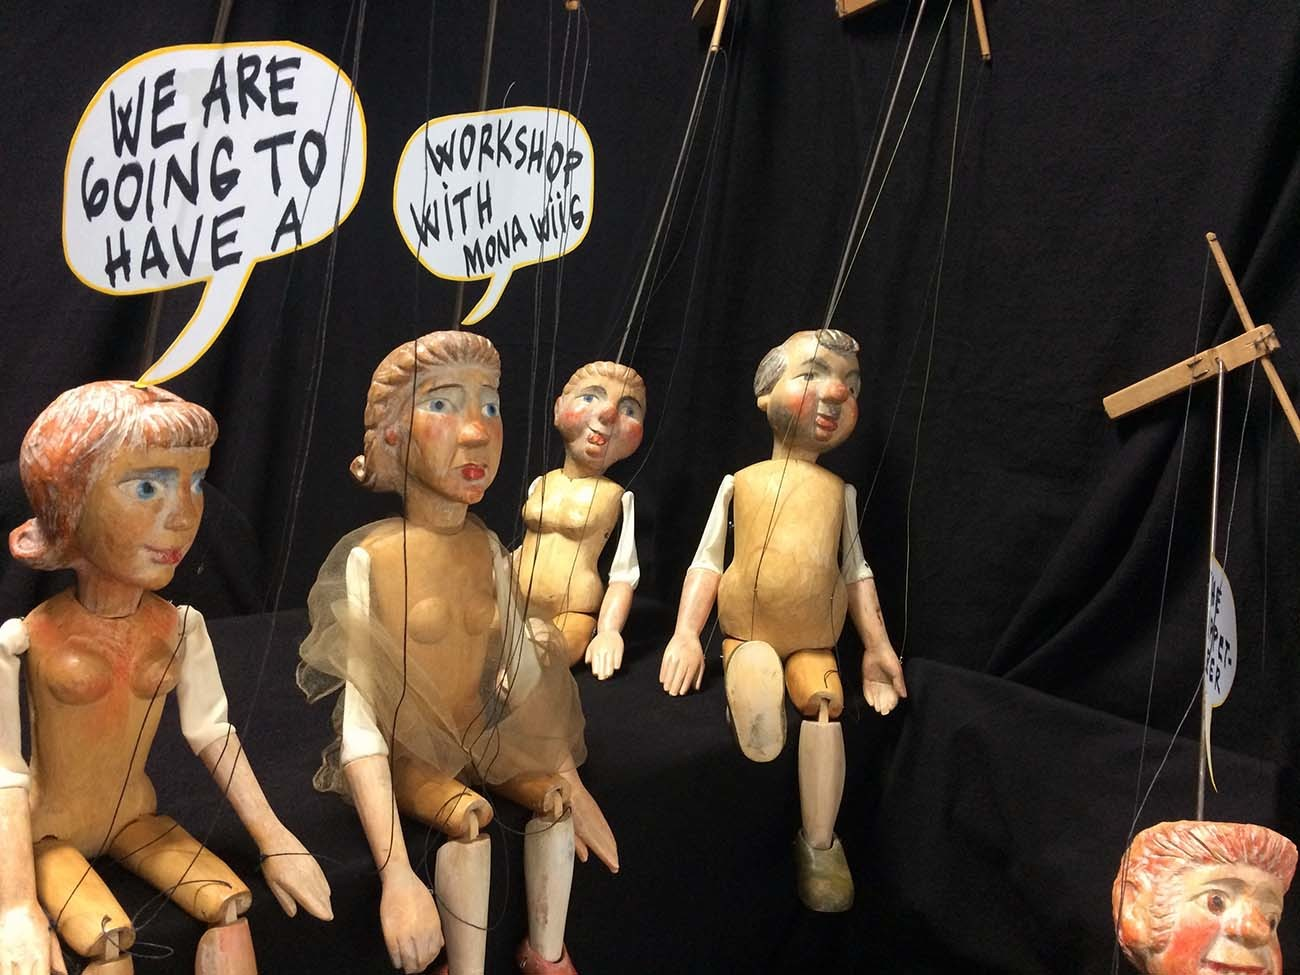 We are going to have a workshop with Mona Wiig, the puppeteer. Foto: Ingvild Holm